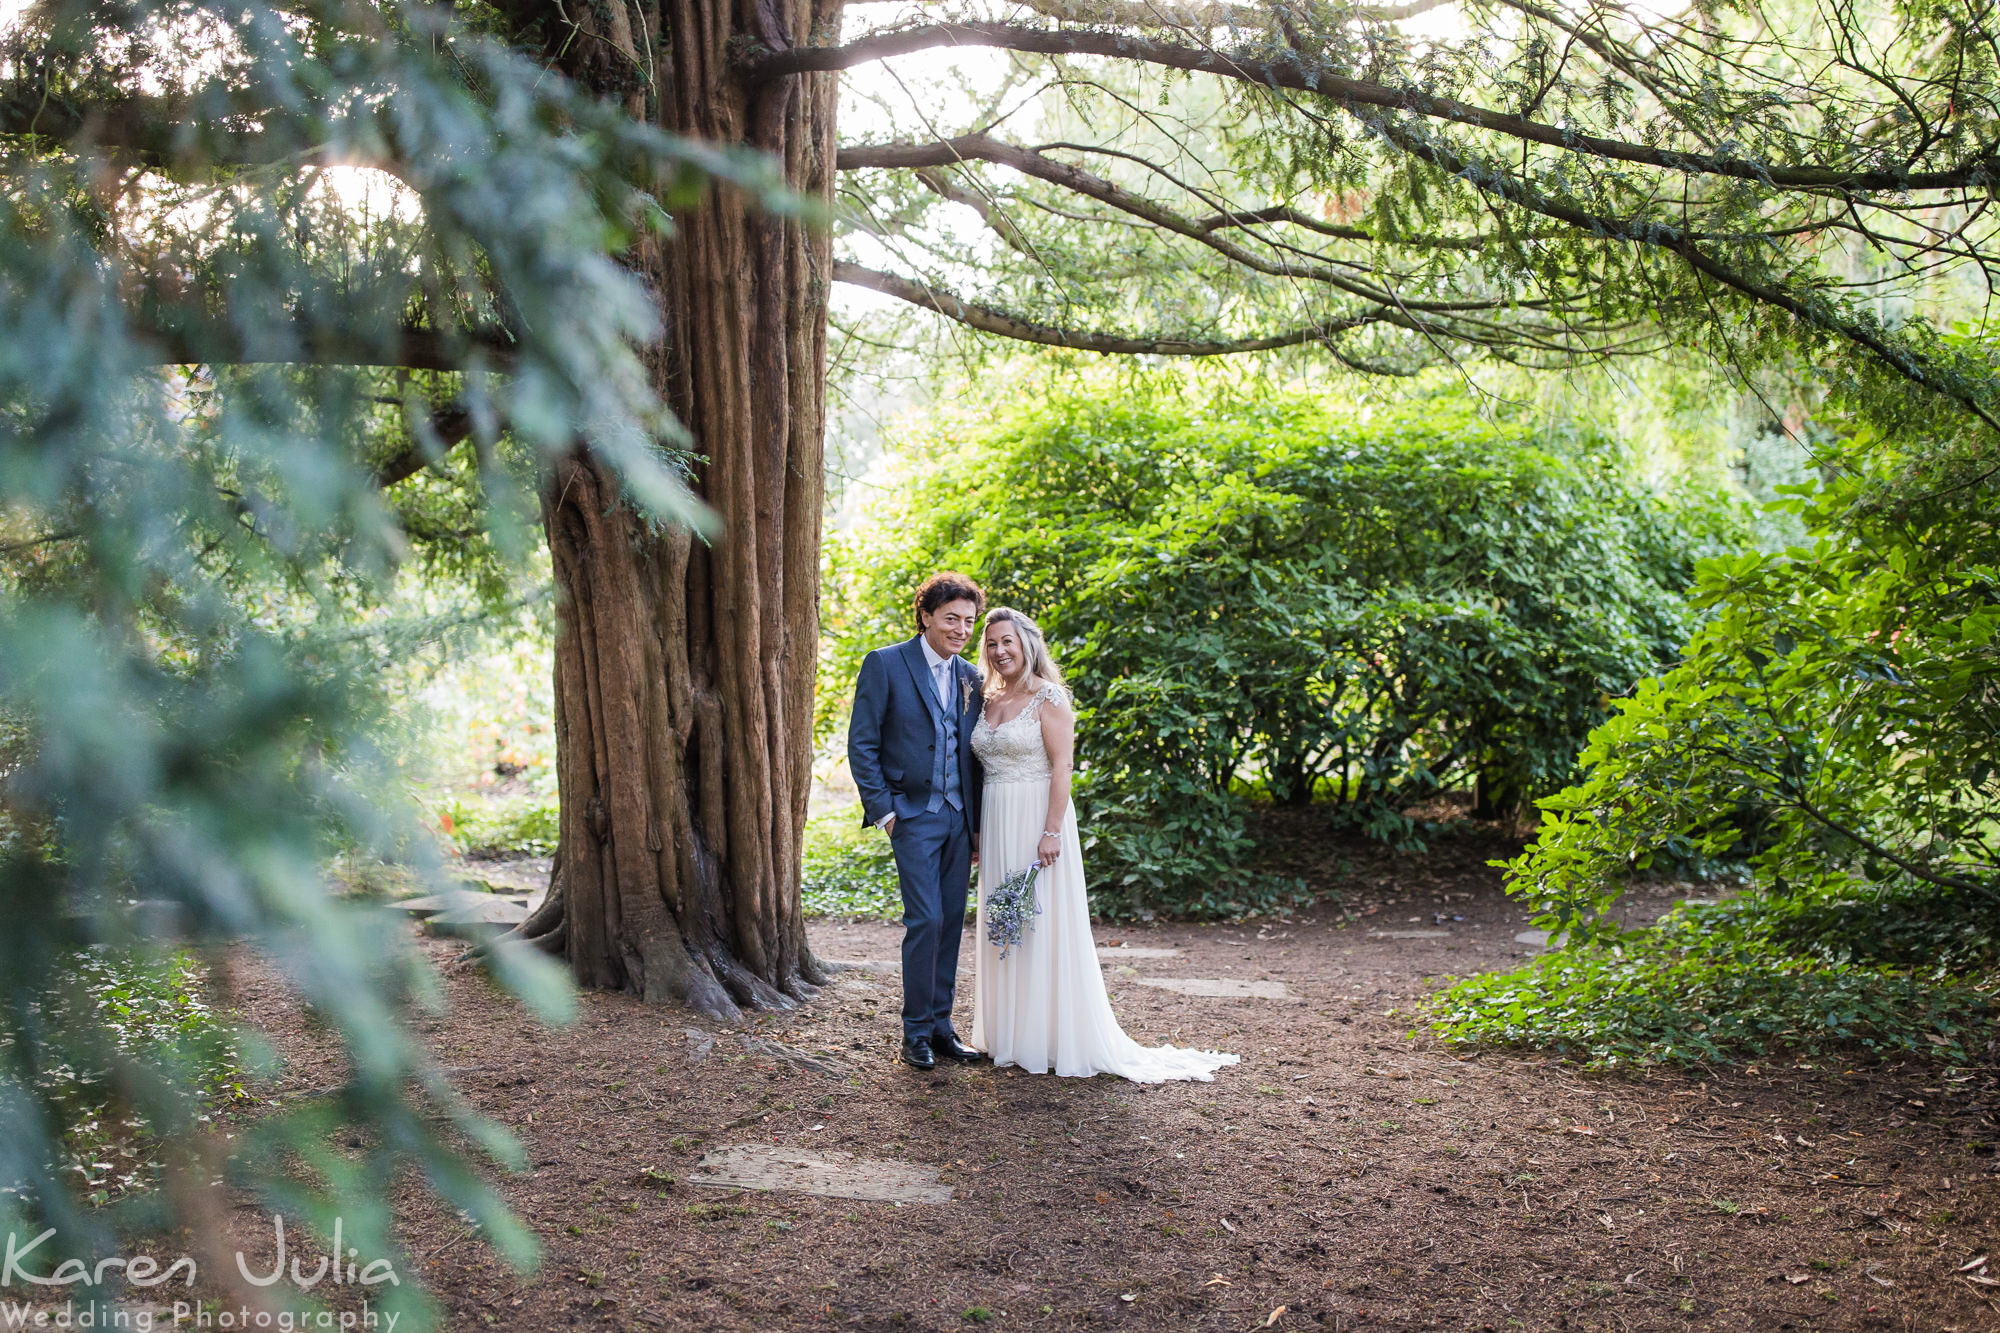 bride and groom in Parsonage gardens at their Rustic Didsbury Parsonage Wedding